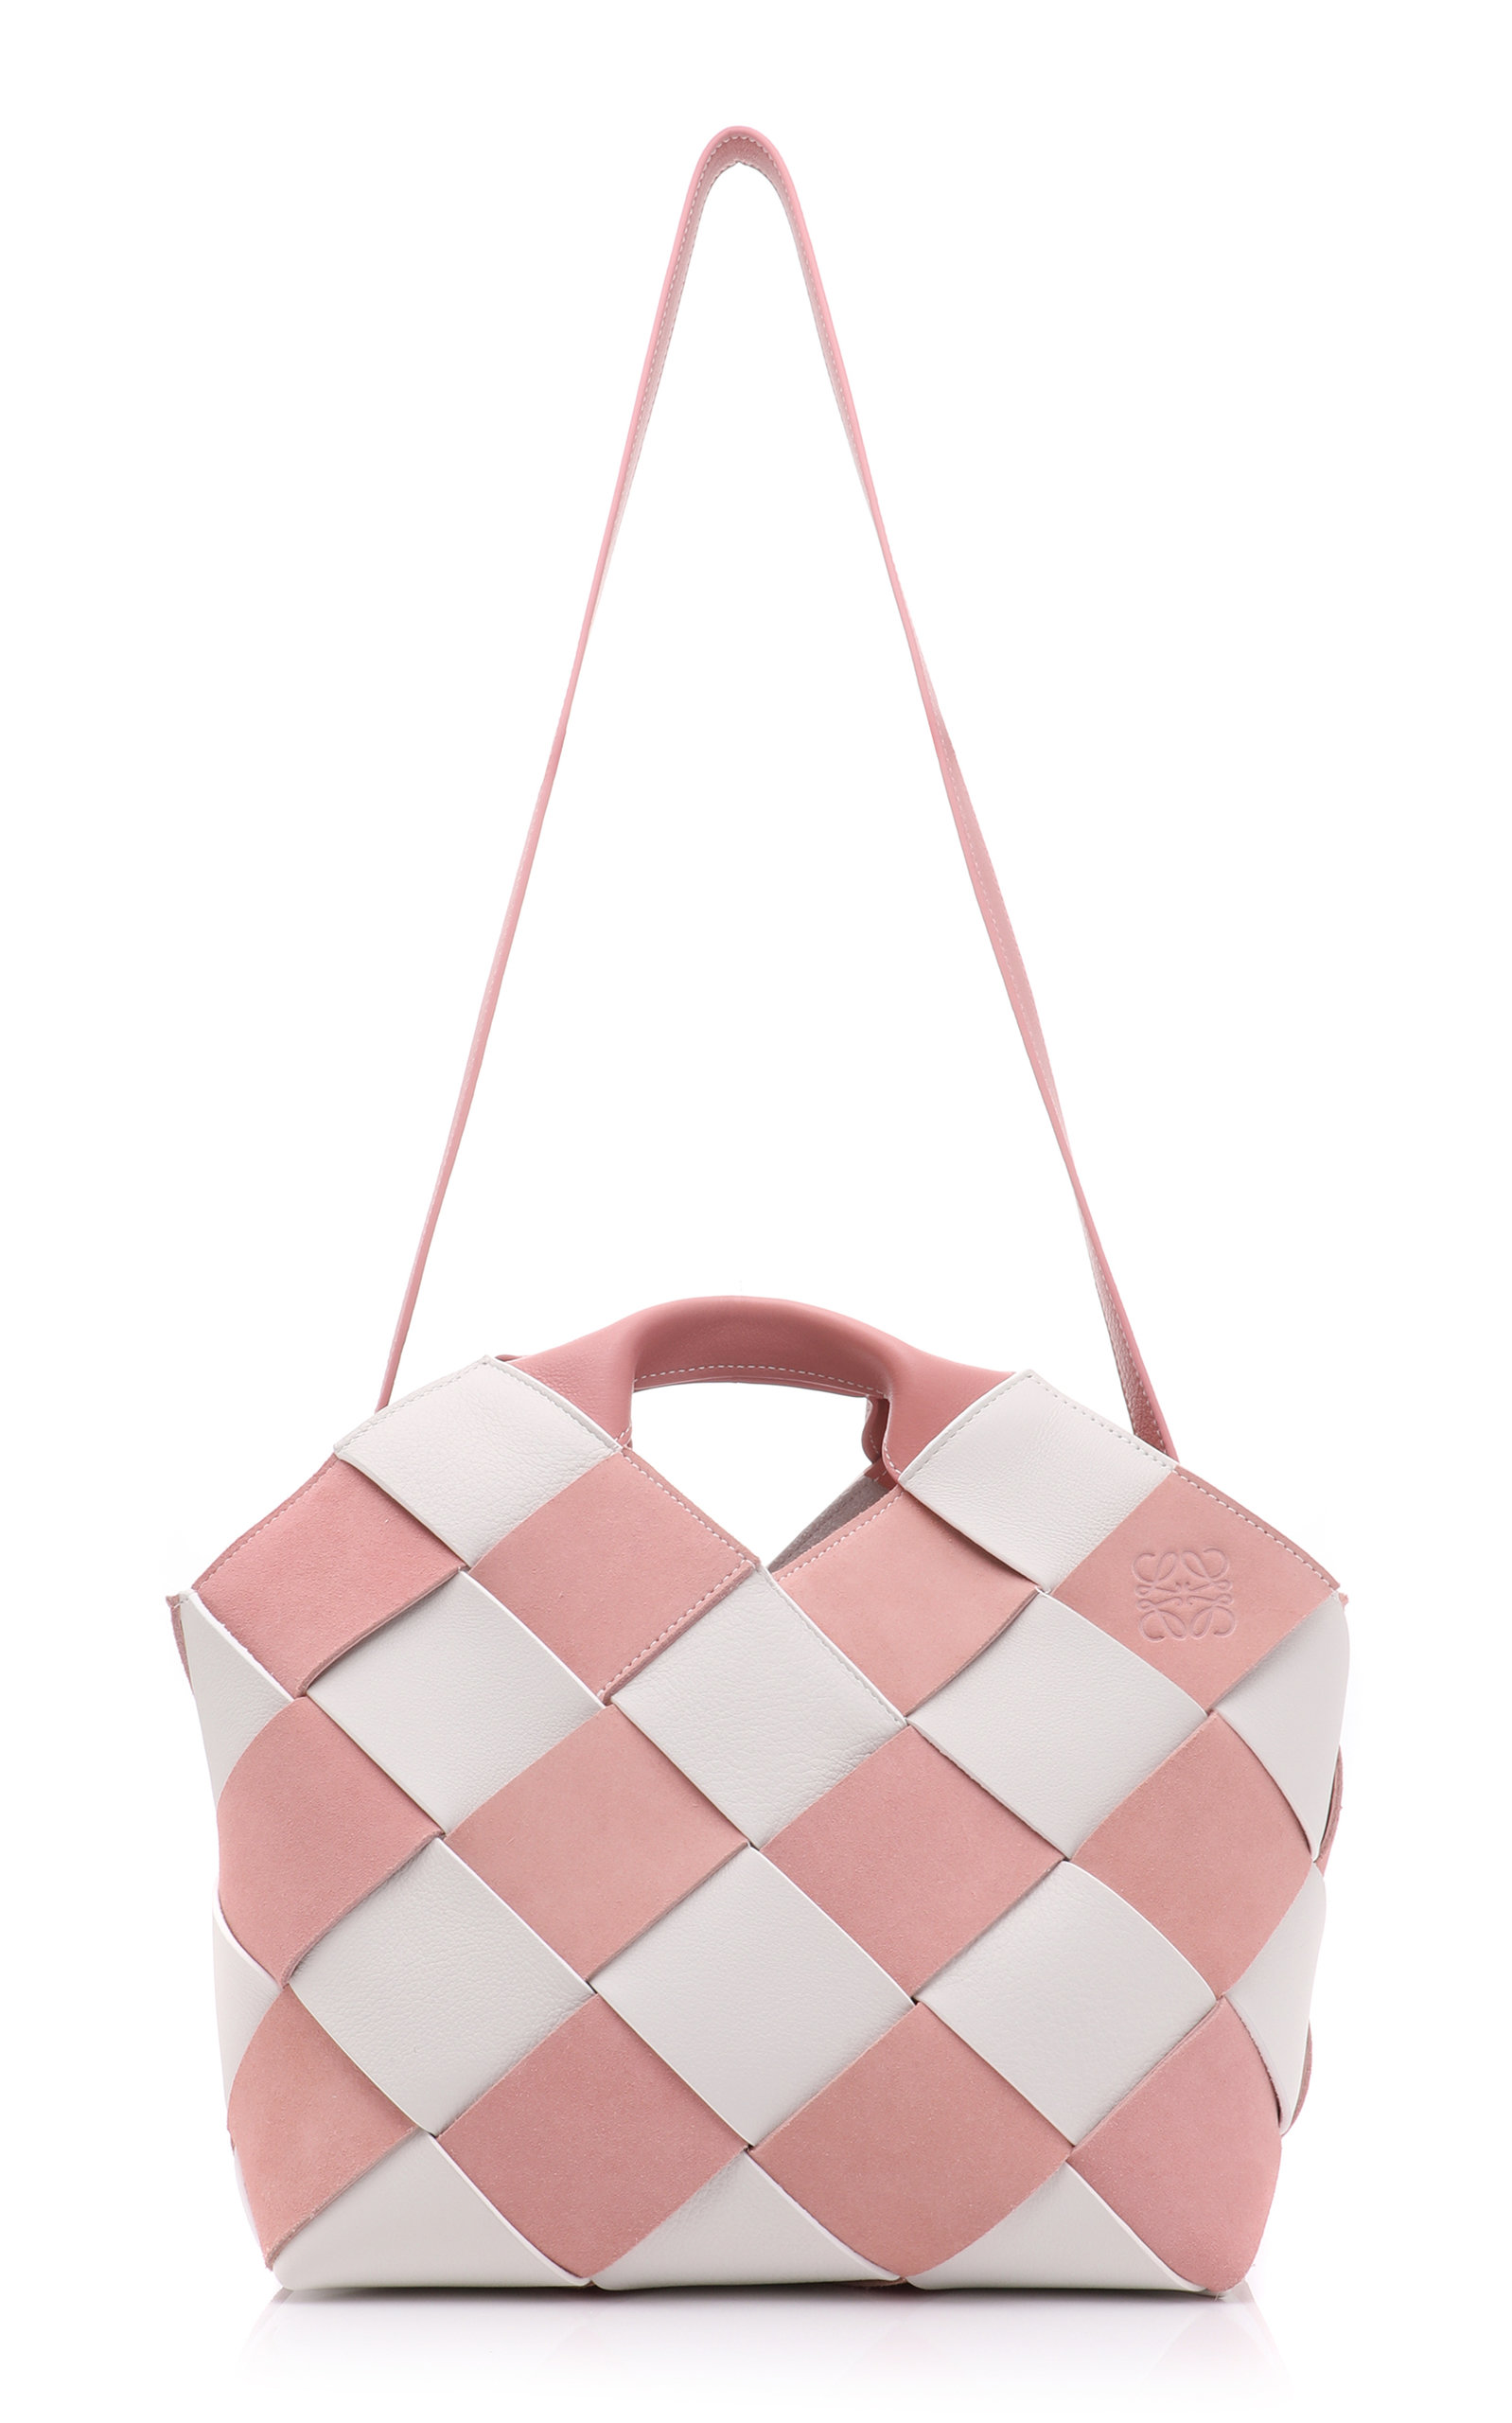 Two-Tone Woven Leather and Suede Tote Loewe rBaItk